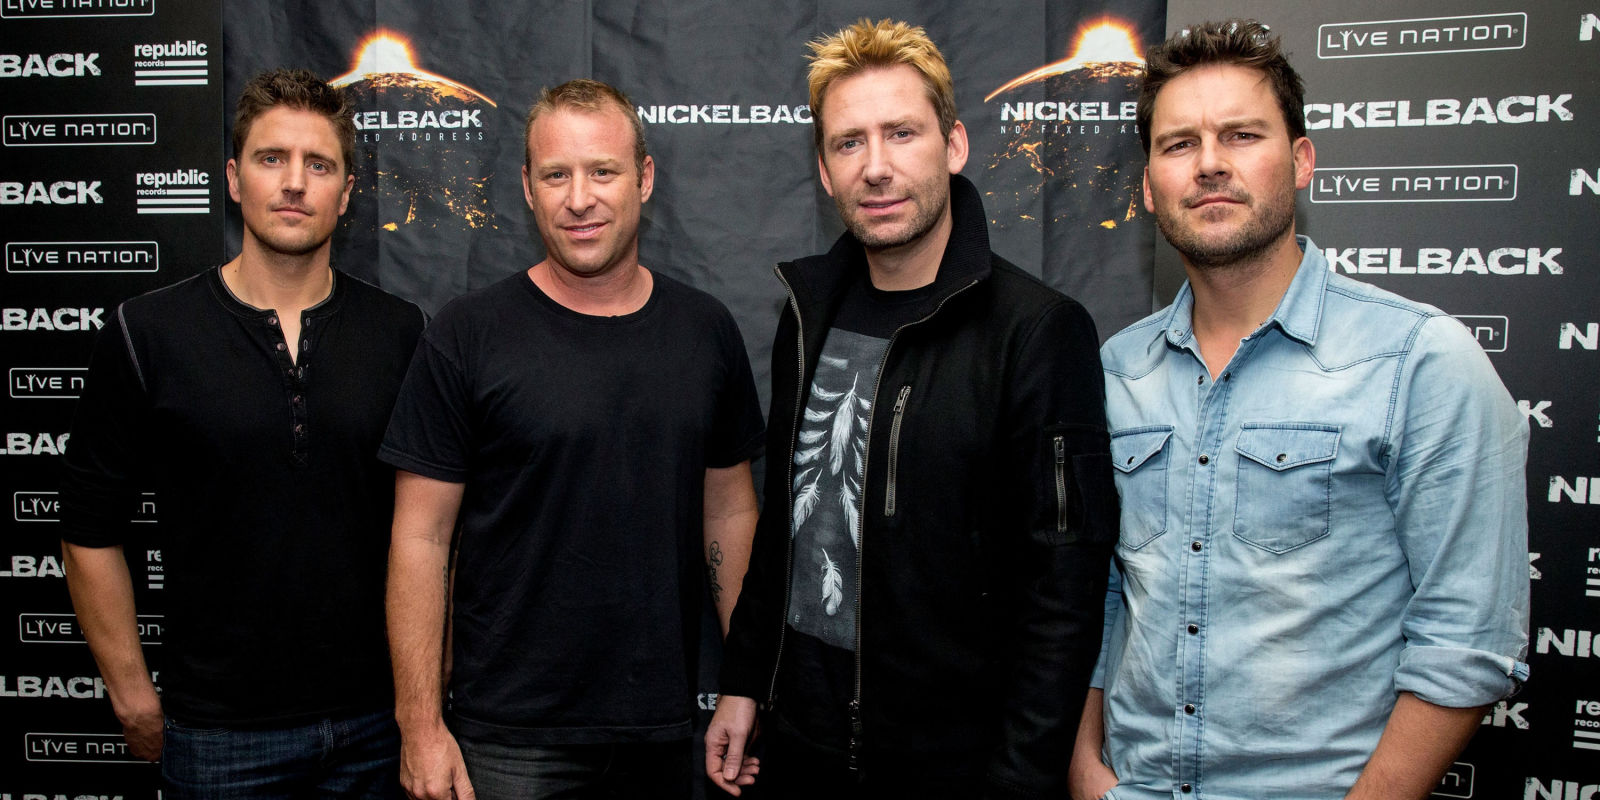 Why Do People Hate Nickelback If Defence Of The Worlds Most Hated